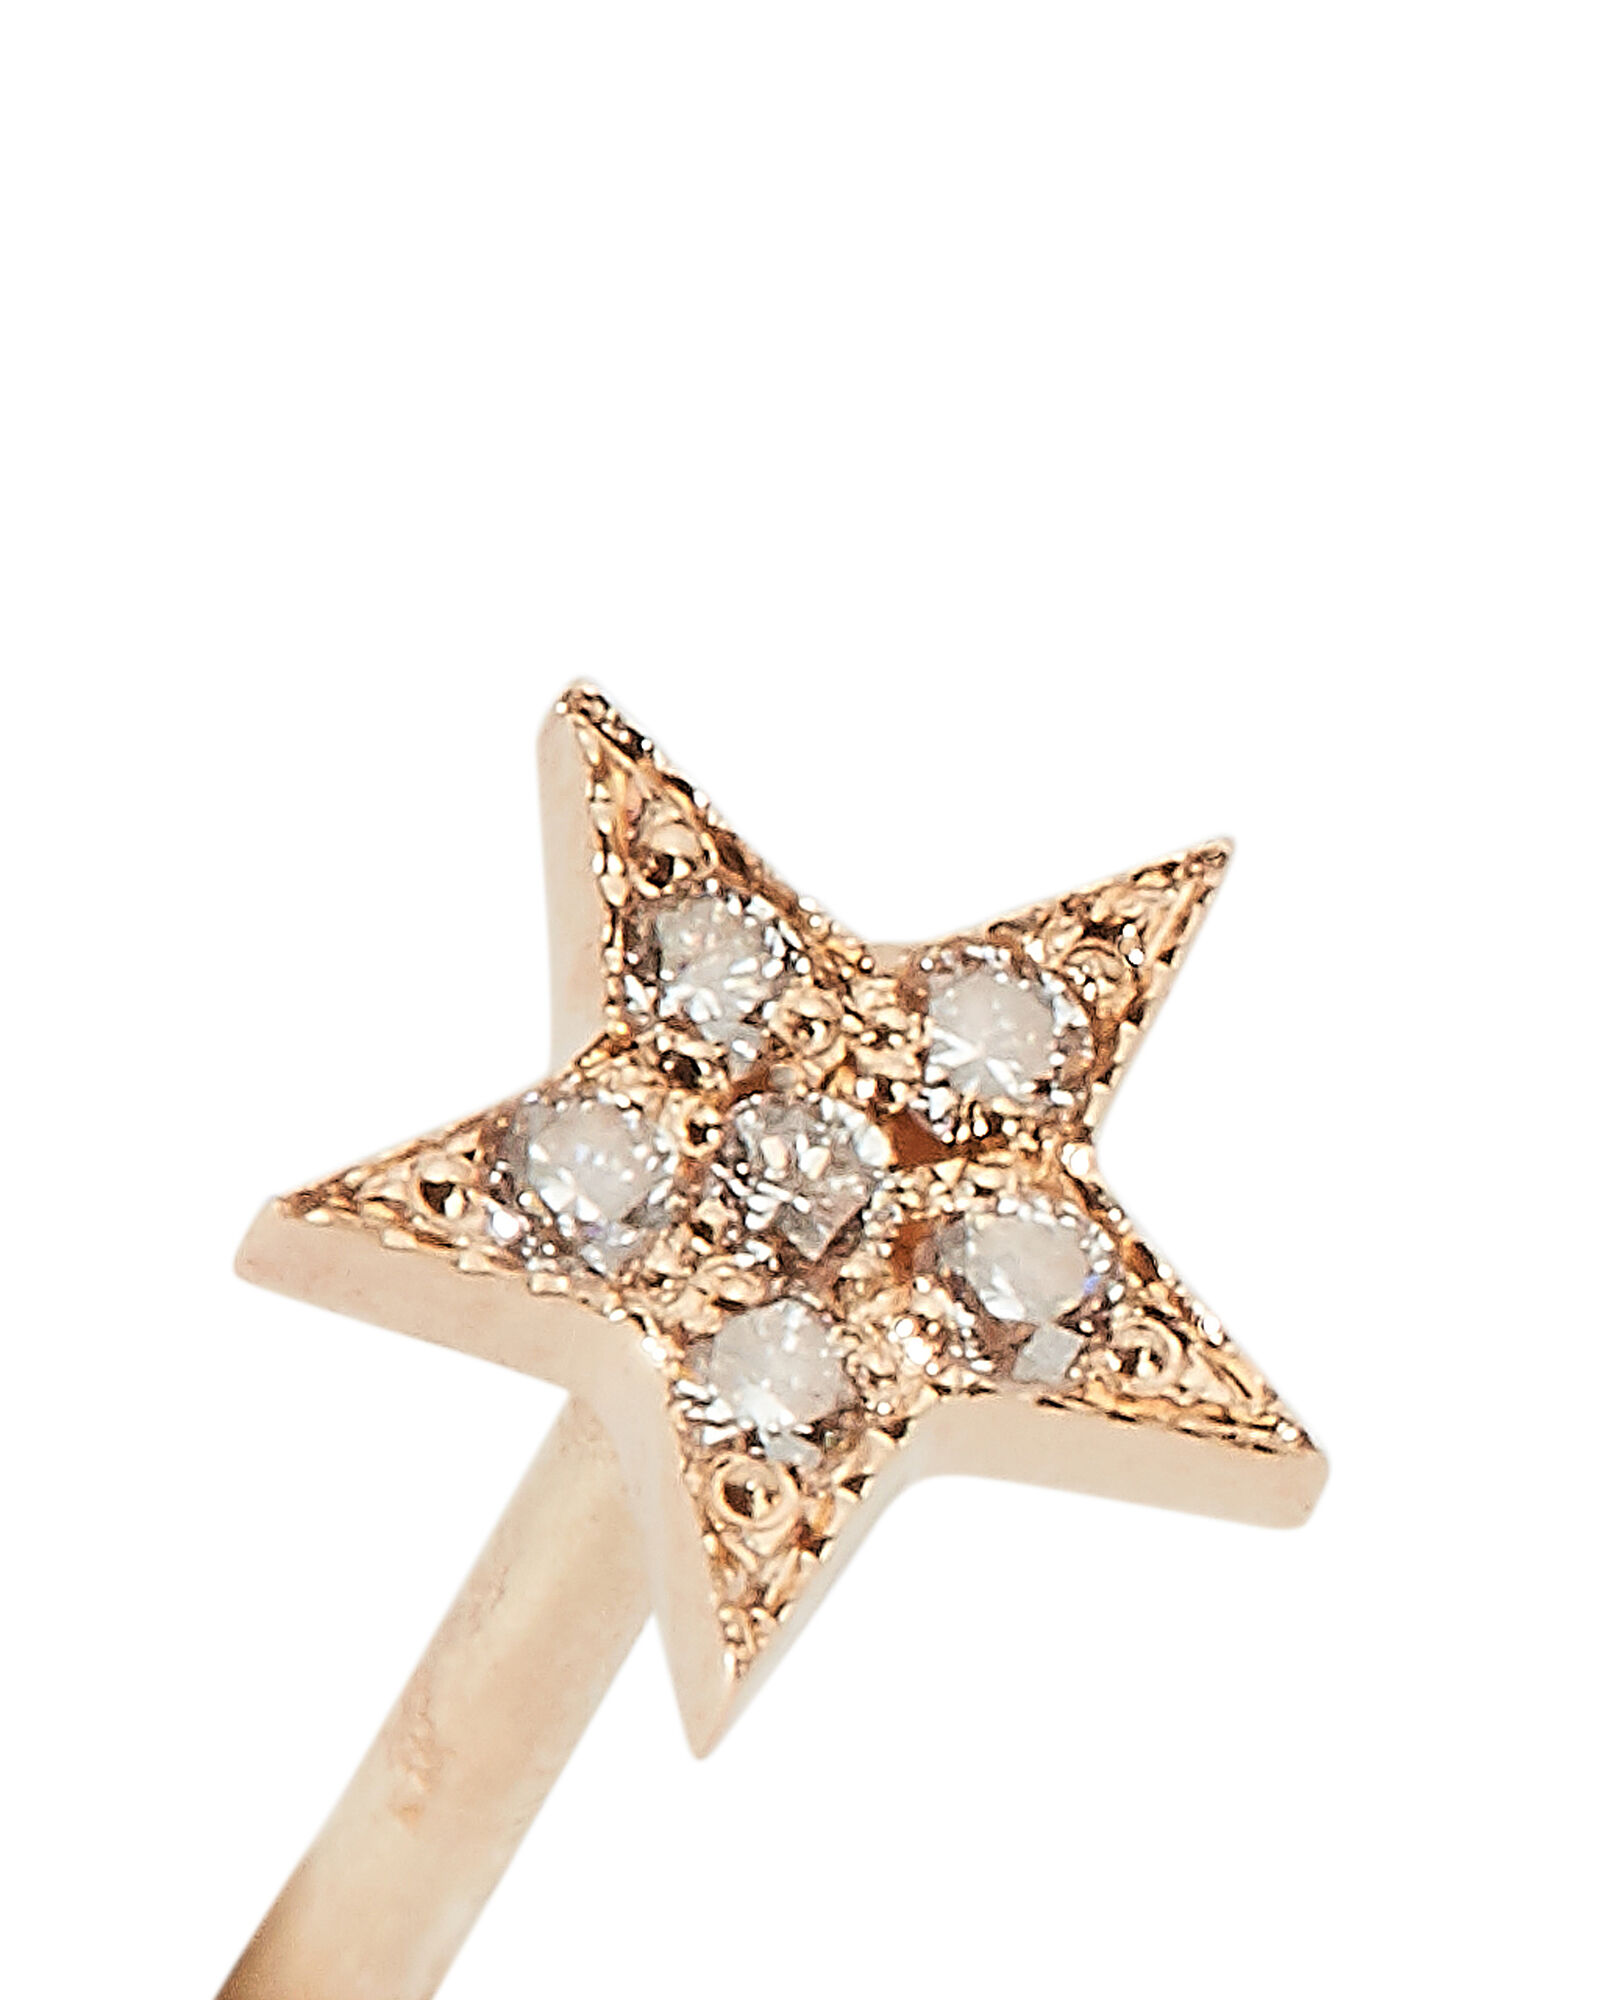 Itty Bitty Star Single Stud Earring, GOLD, hi-res